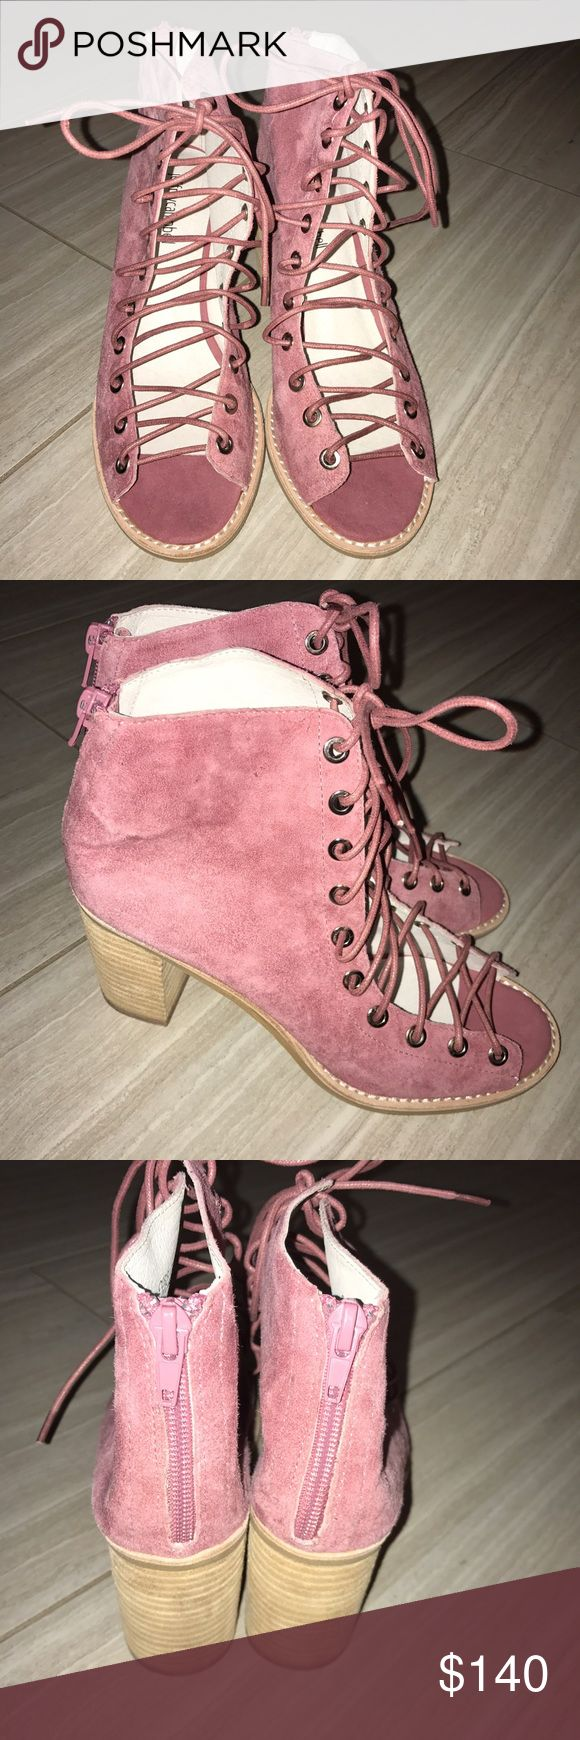 Jeffrey Campbell Cors Suede Peep Toe Bootie sz 7.5 Brand new size 7.5 blush / pink color Jeffrey Campbell Shoes Lace Up Boots